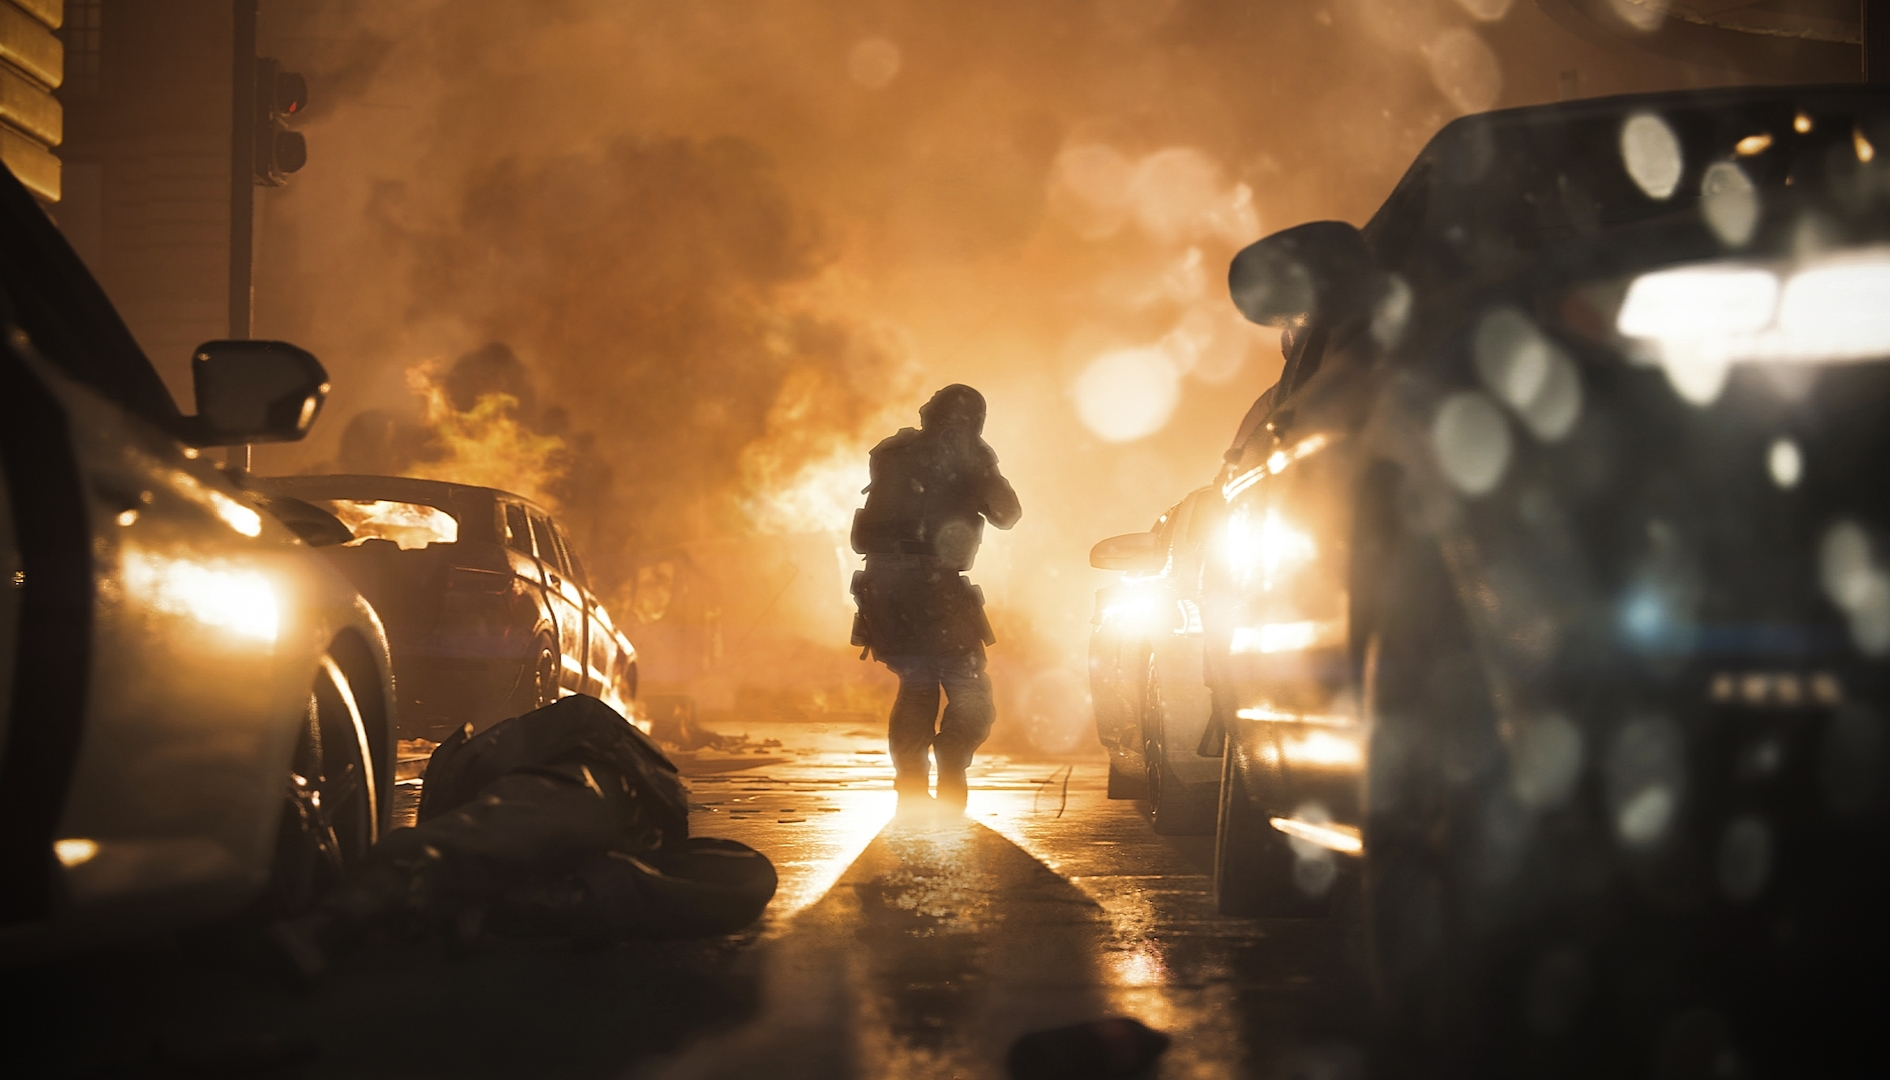 Call of Duty Modern Warfare: Gunfight, ecco un video gameplay in 4K